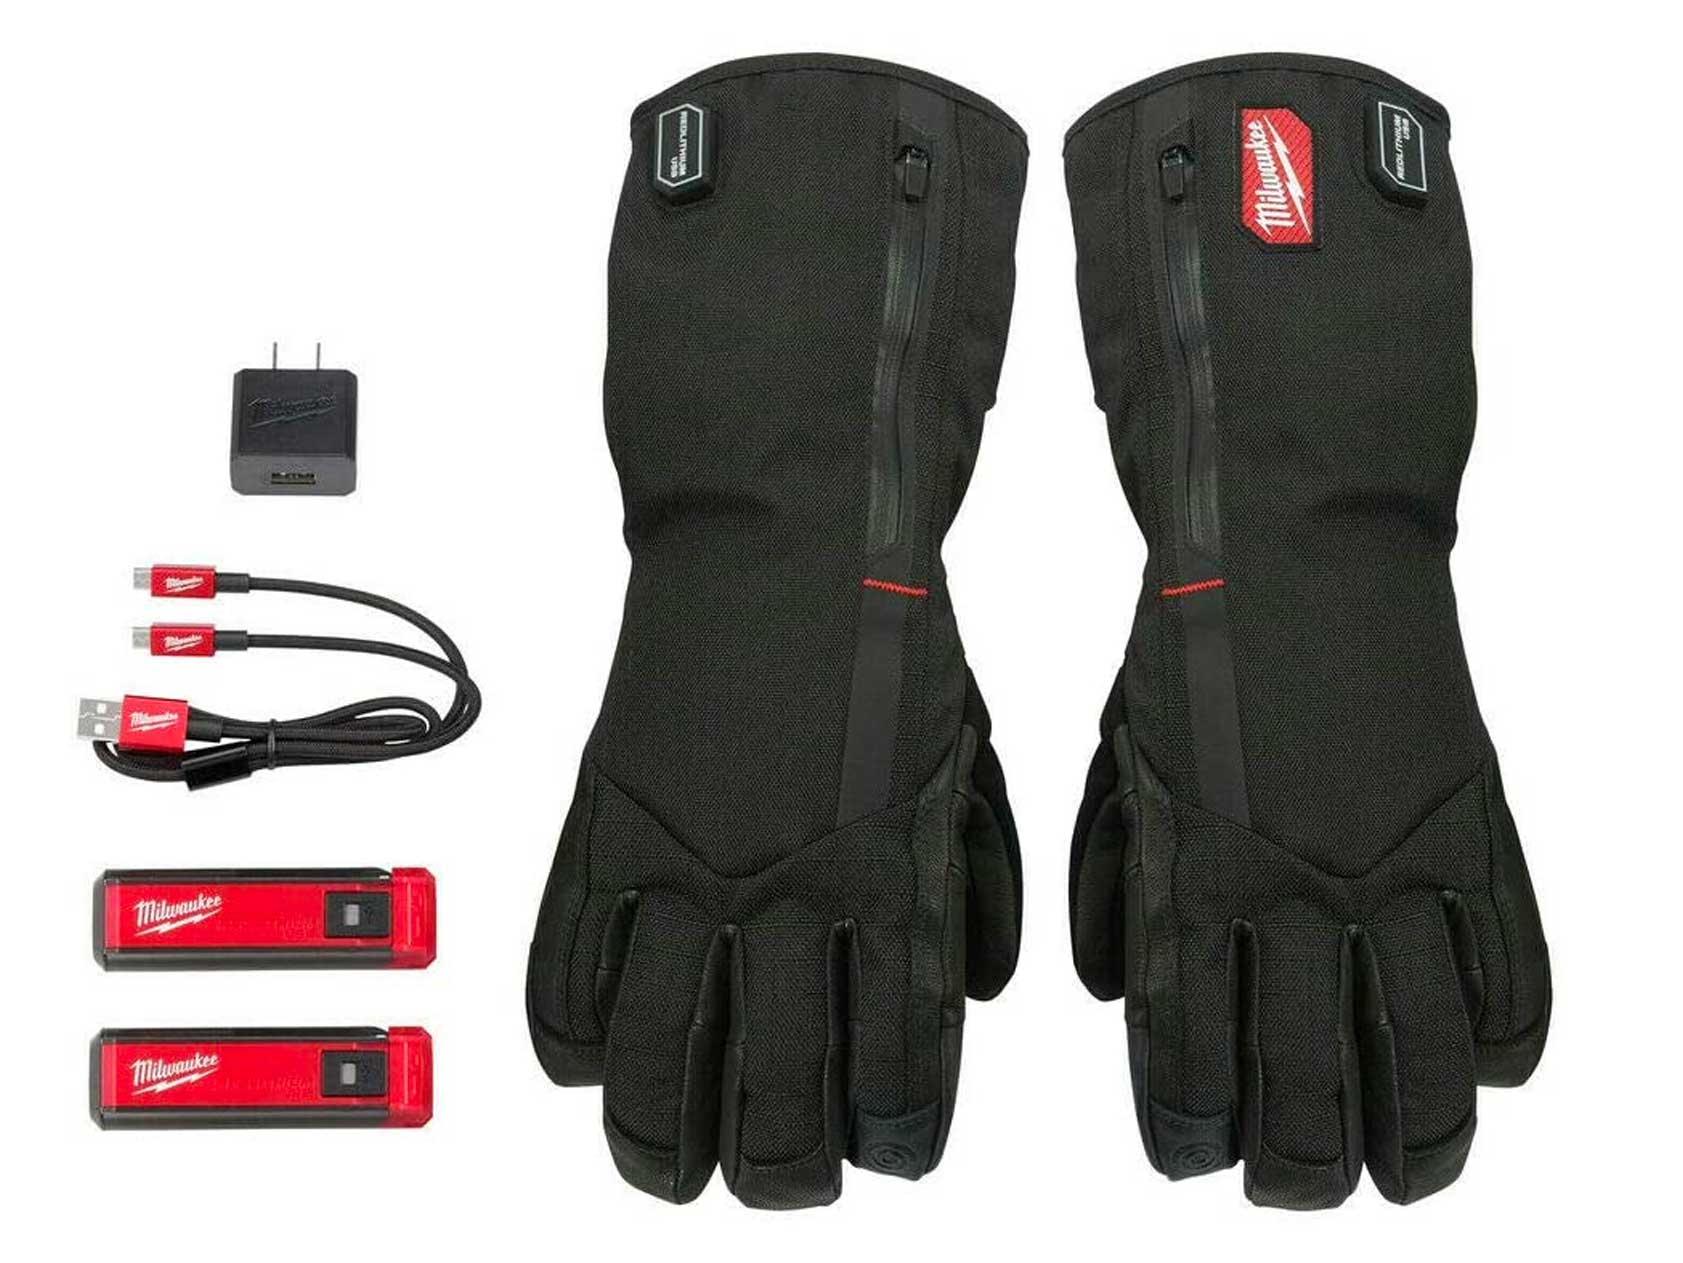 Milwaukee REDLITHIUM USB Heated Gloves with Battery and Charger